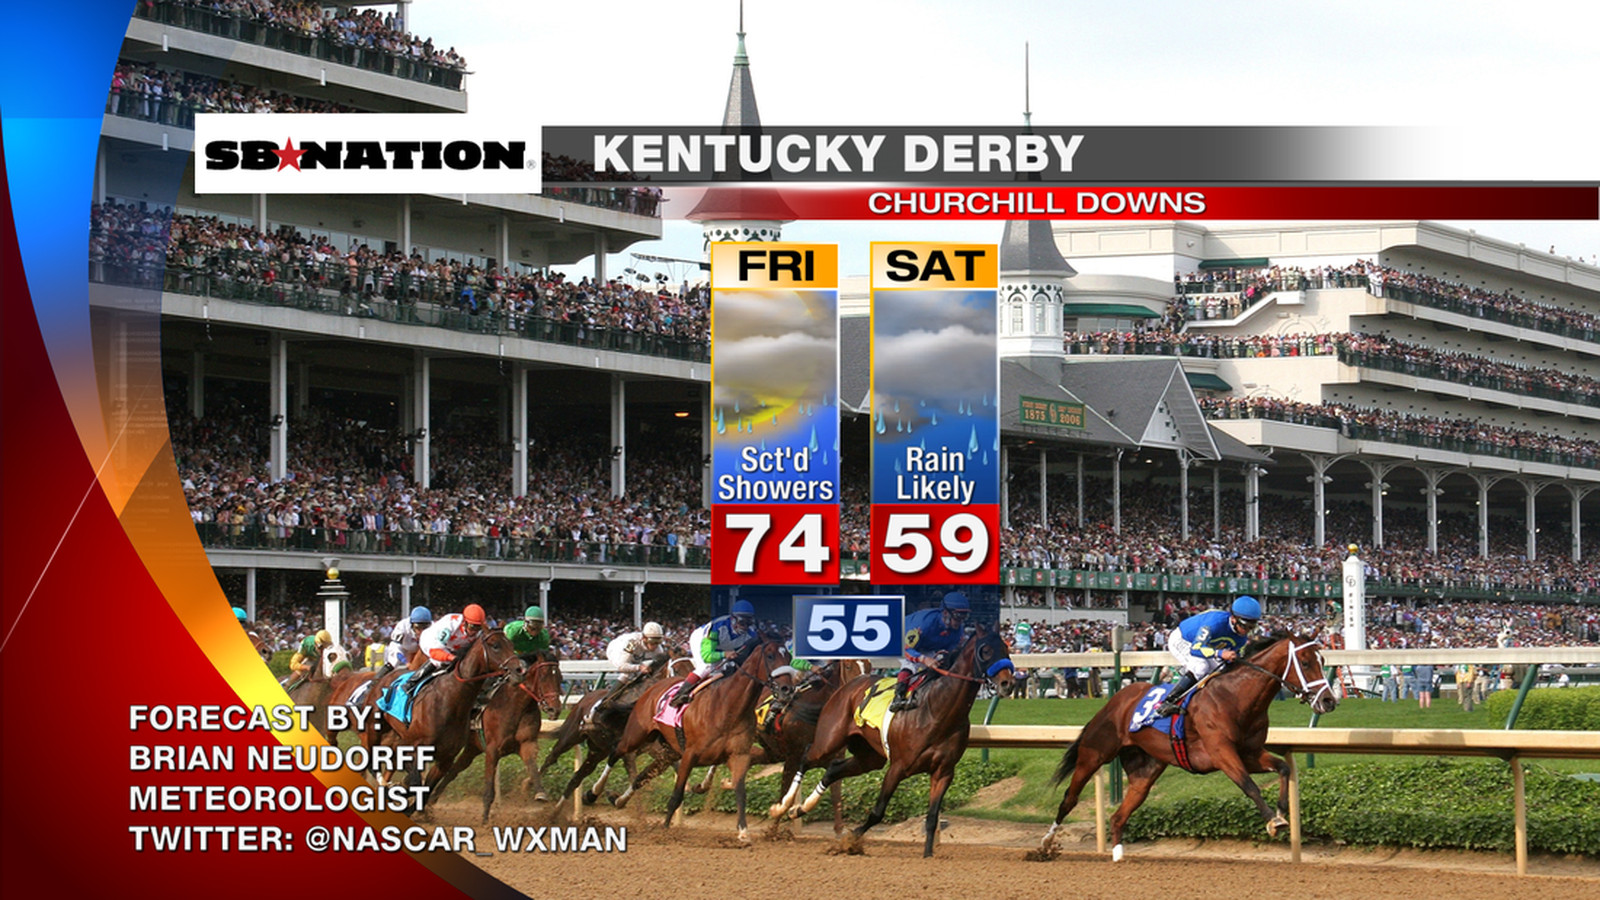 Kentucky Derby 2013: Wet Weather This Weekend